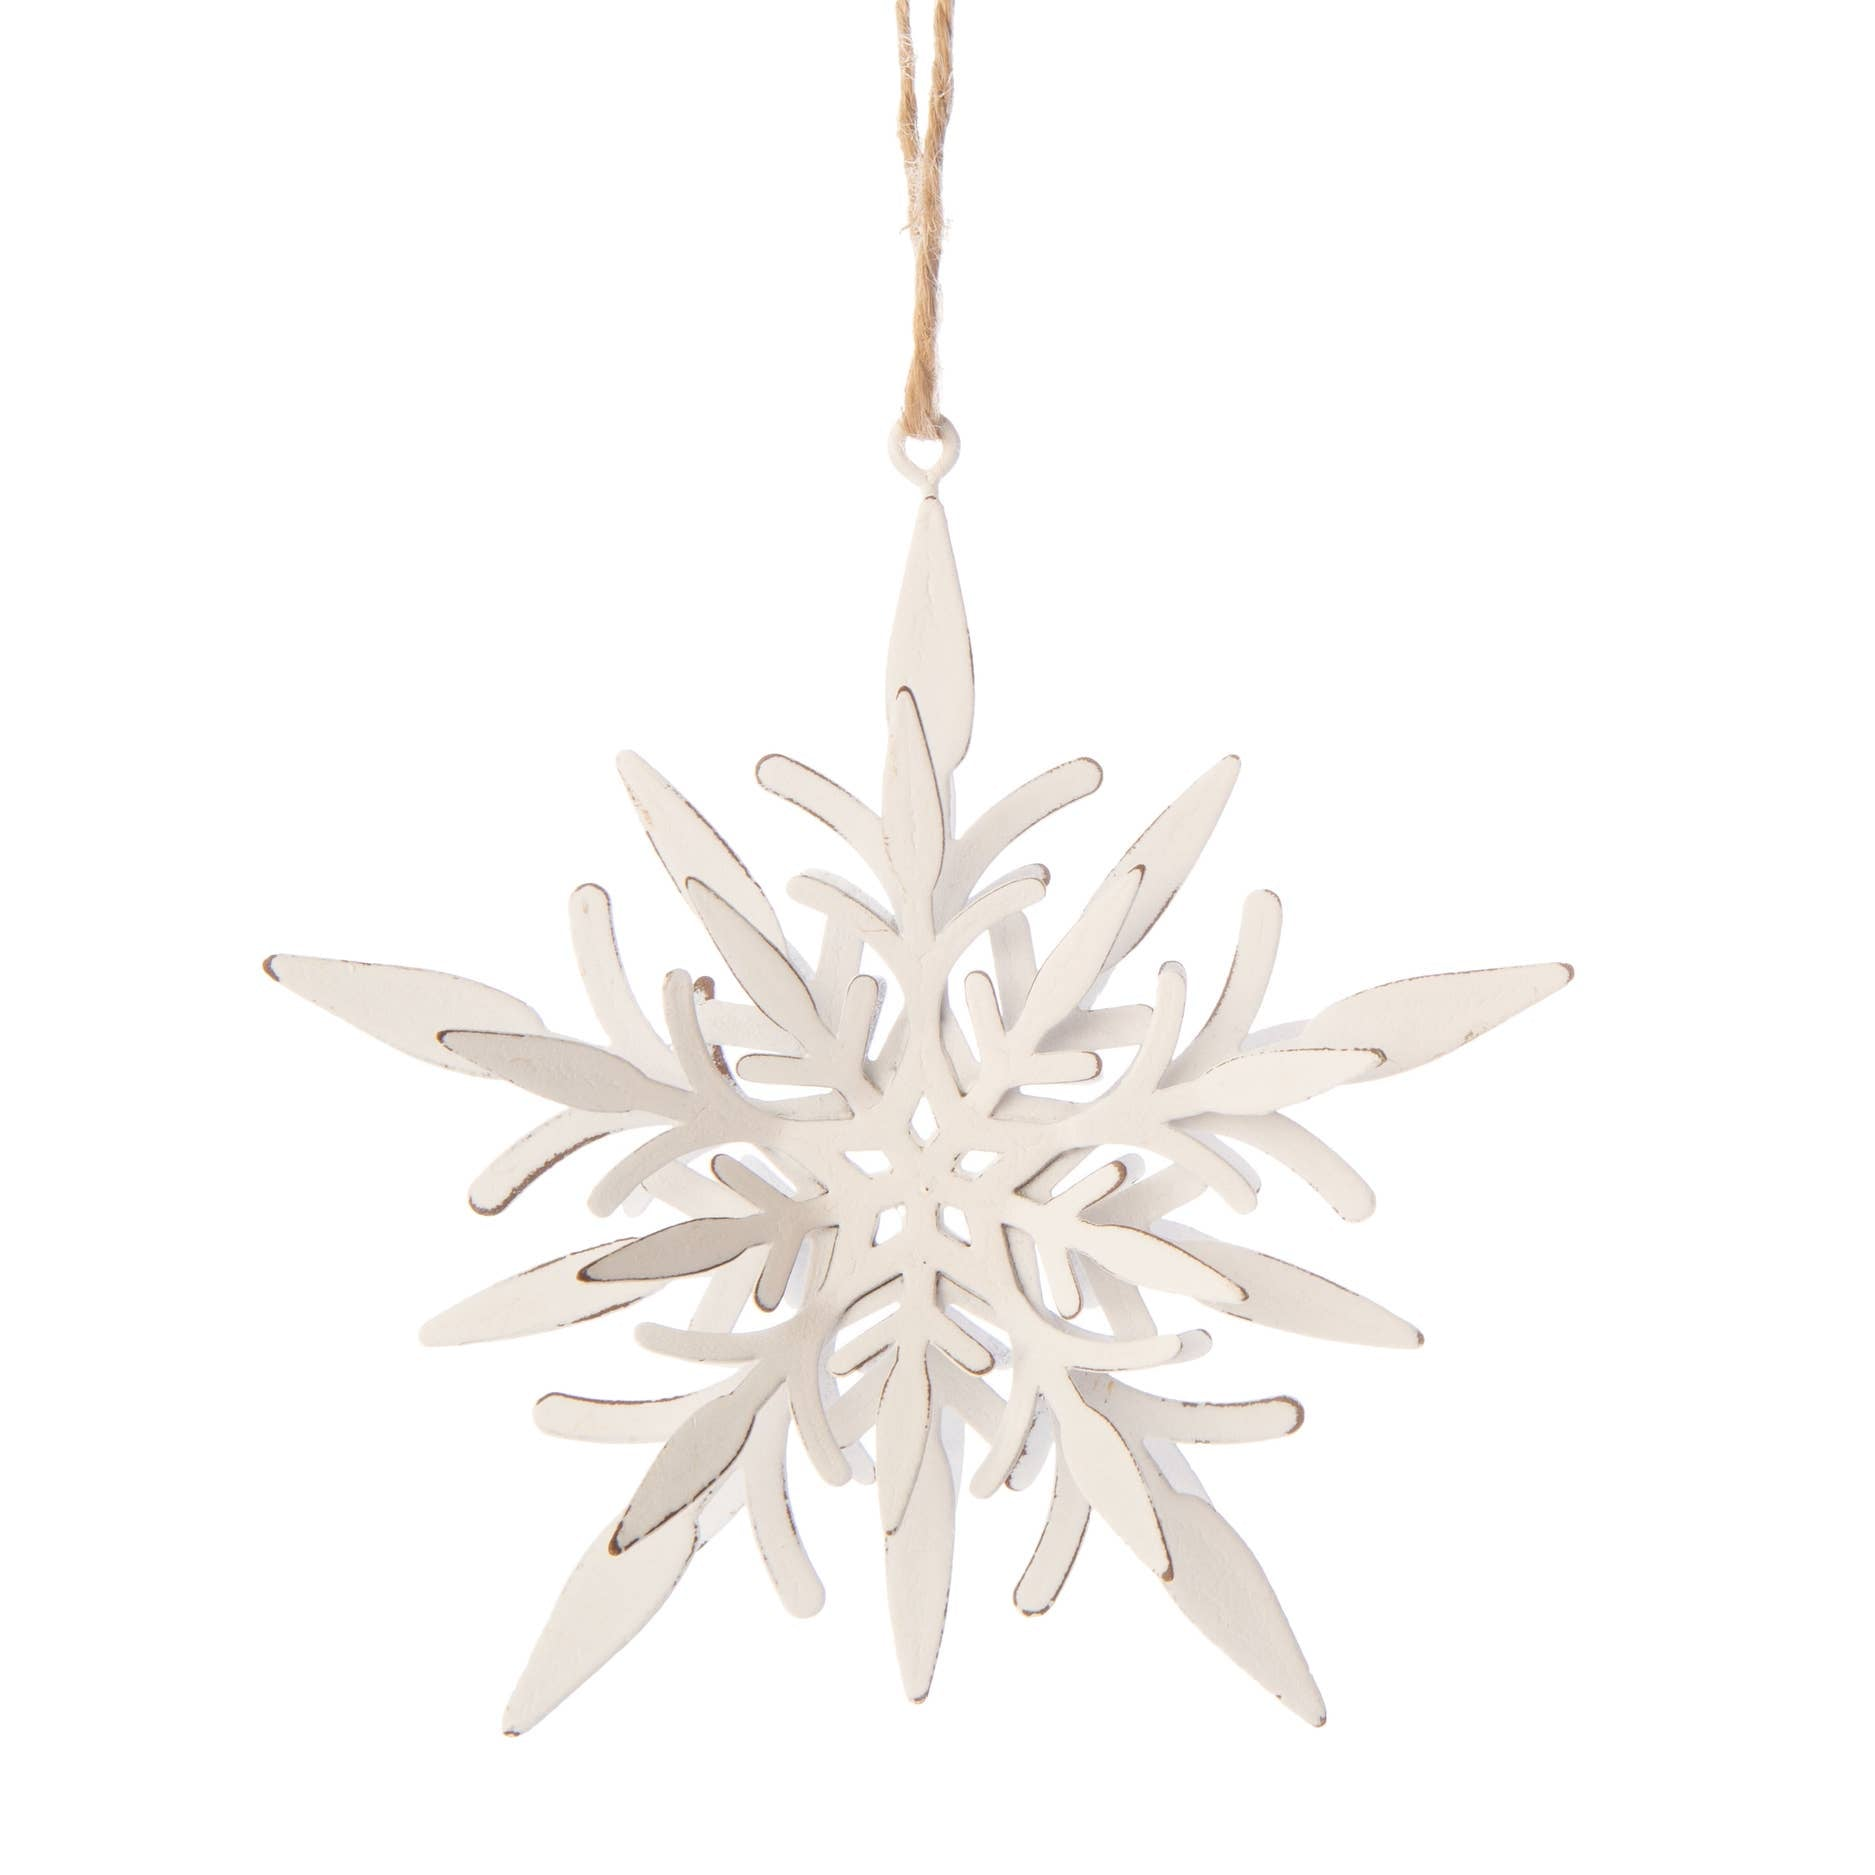 The Antiqued White Snowflake Ornament